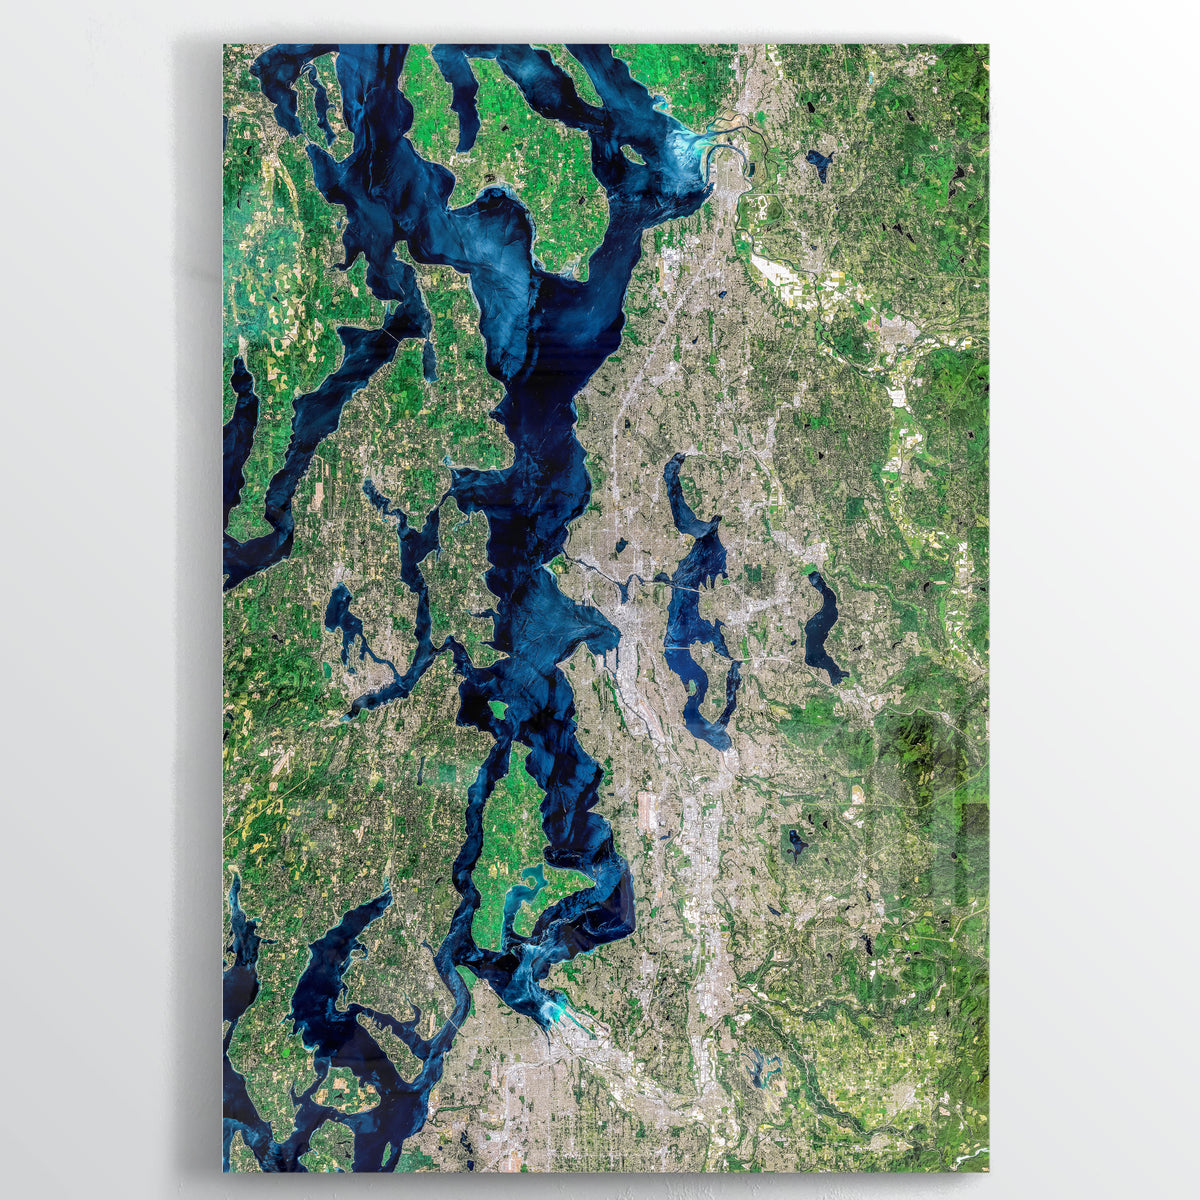 7287 Earth Photography - Floating Acrylic Art - Point Two Design